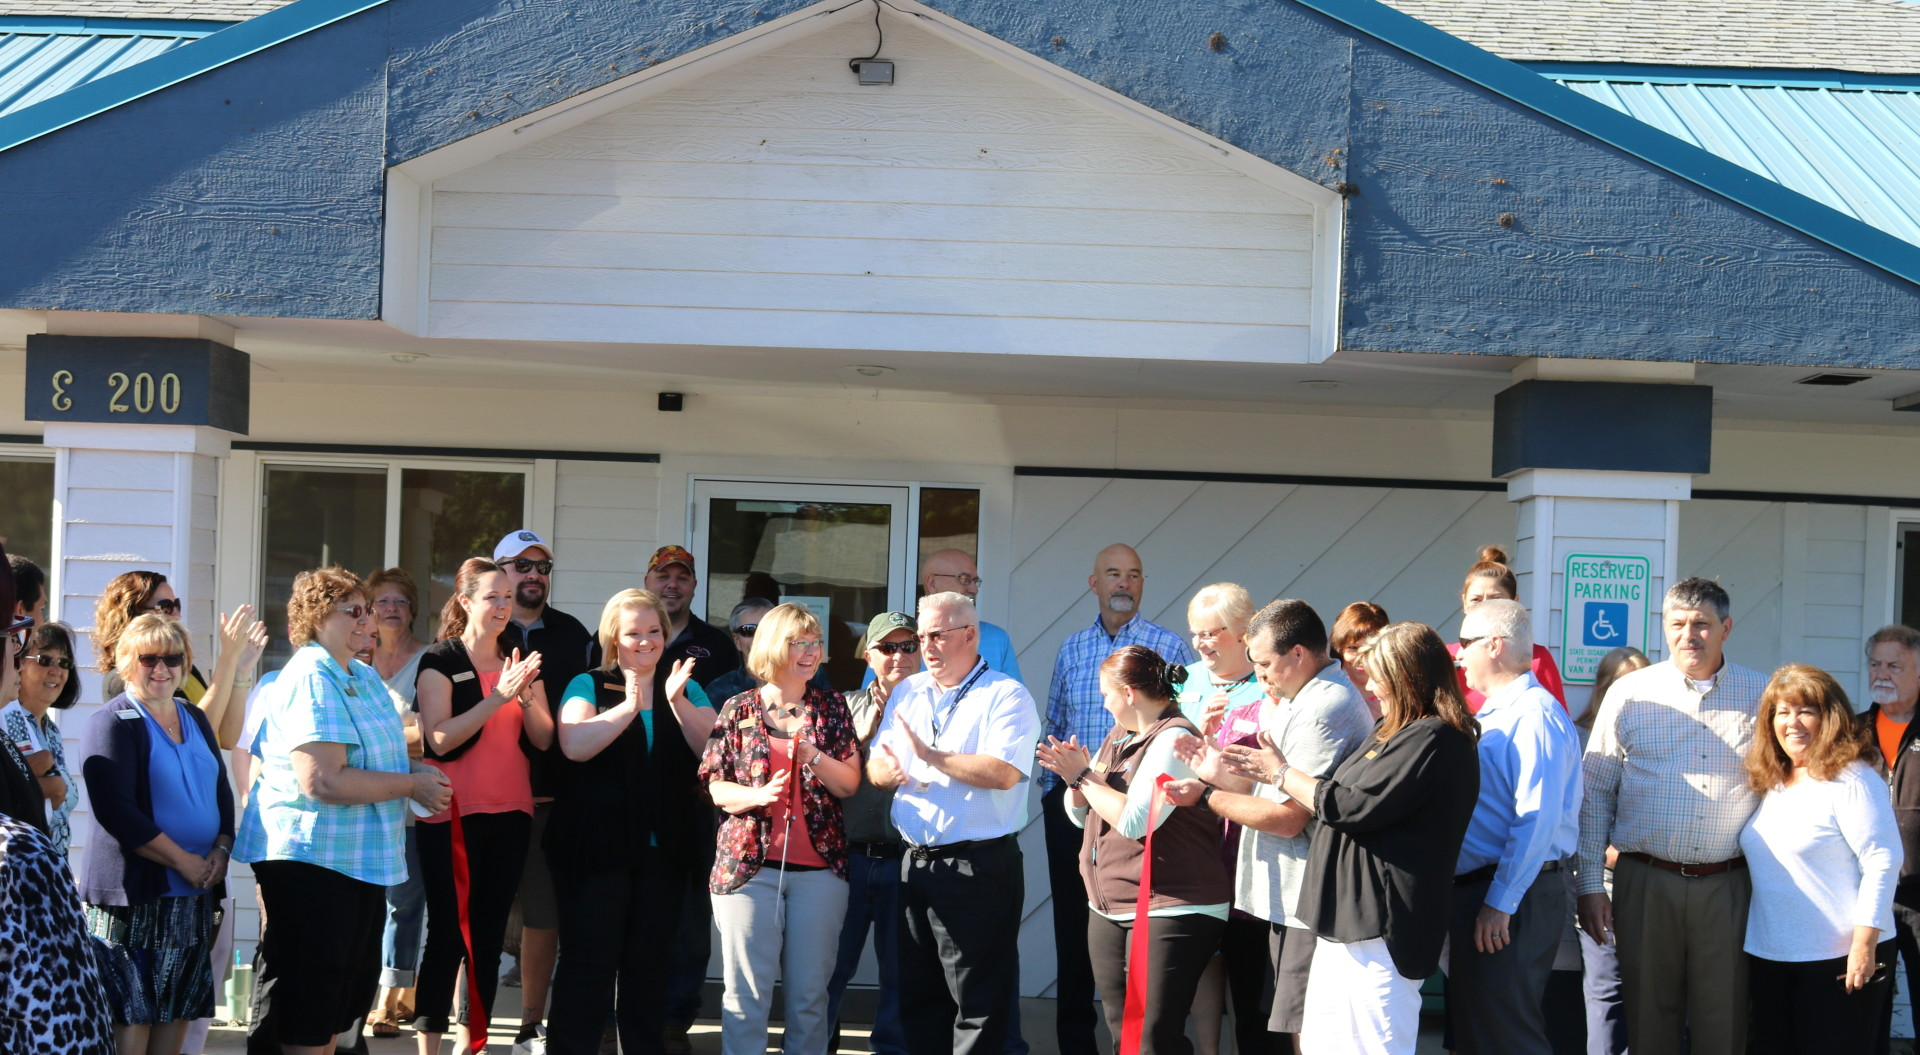 Kootenai-County-DMV-Ribbon-Cutting-w5443-w1920.jpg